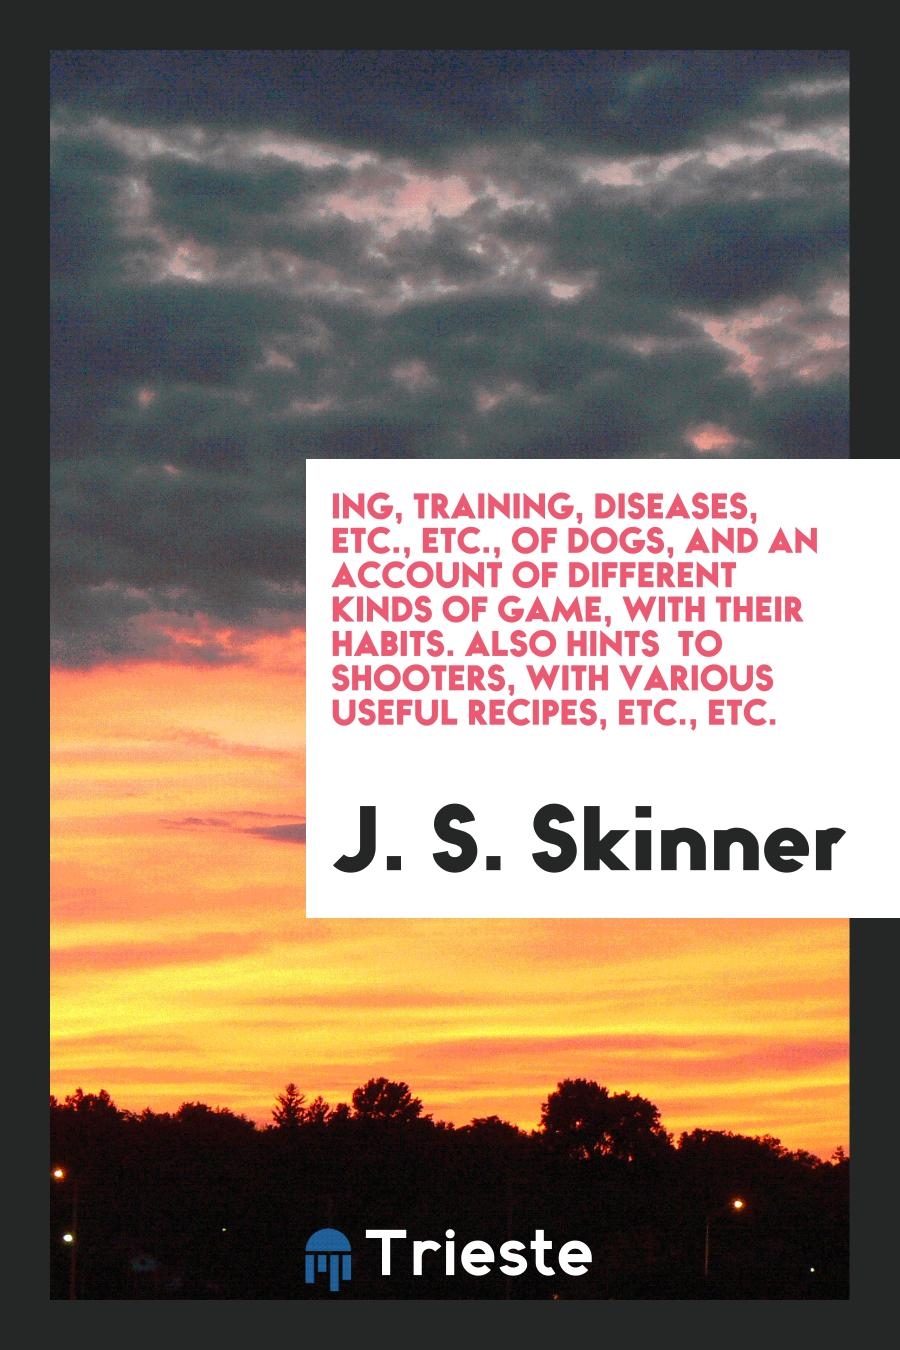 ing, Training, Diseases, Etc., Etc., of Dogs, and an Account of Different Kinds of Game, with Their Habits. Also Hints to Shooters, with Various Useful Recipes, Etc., Etc.